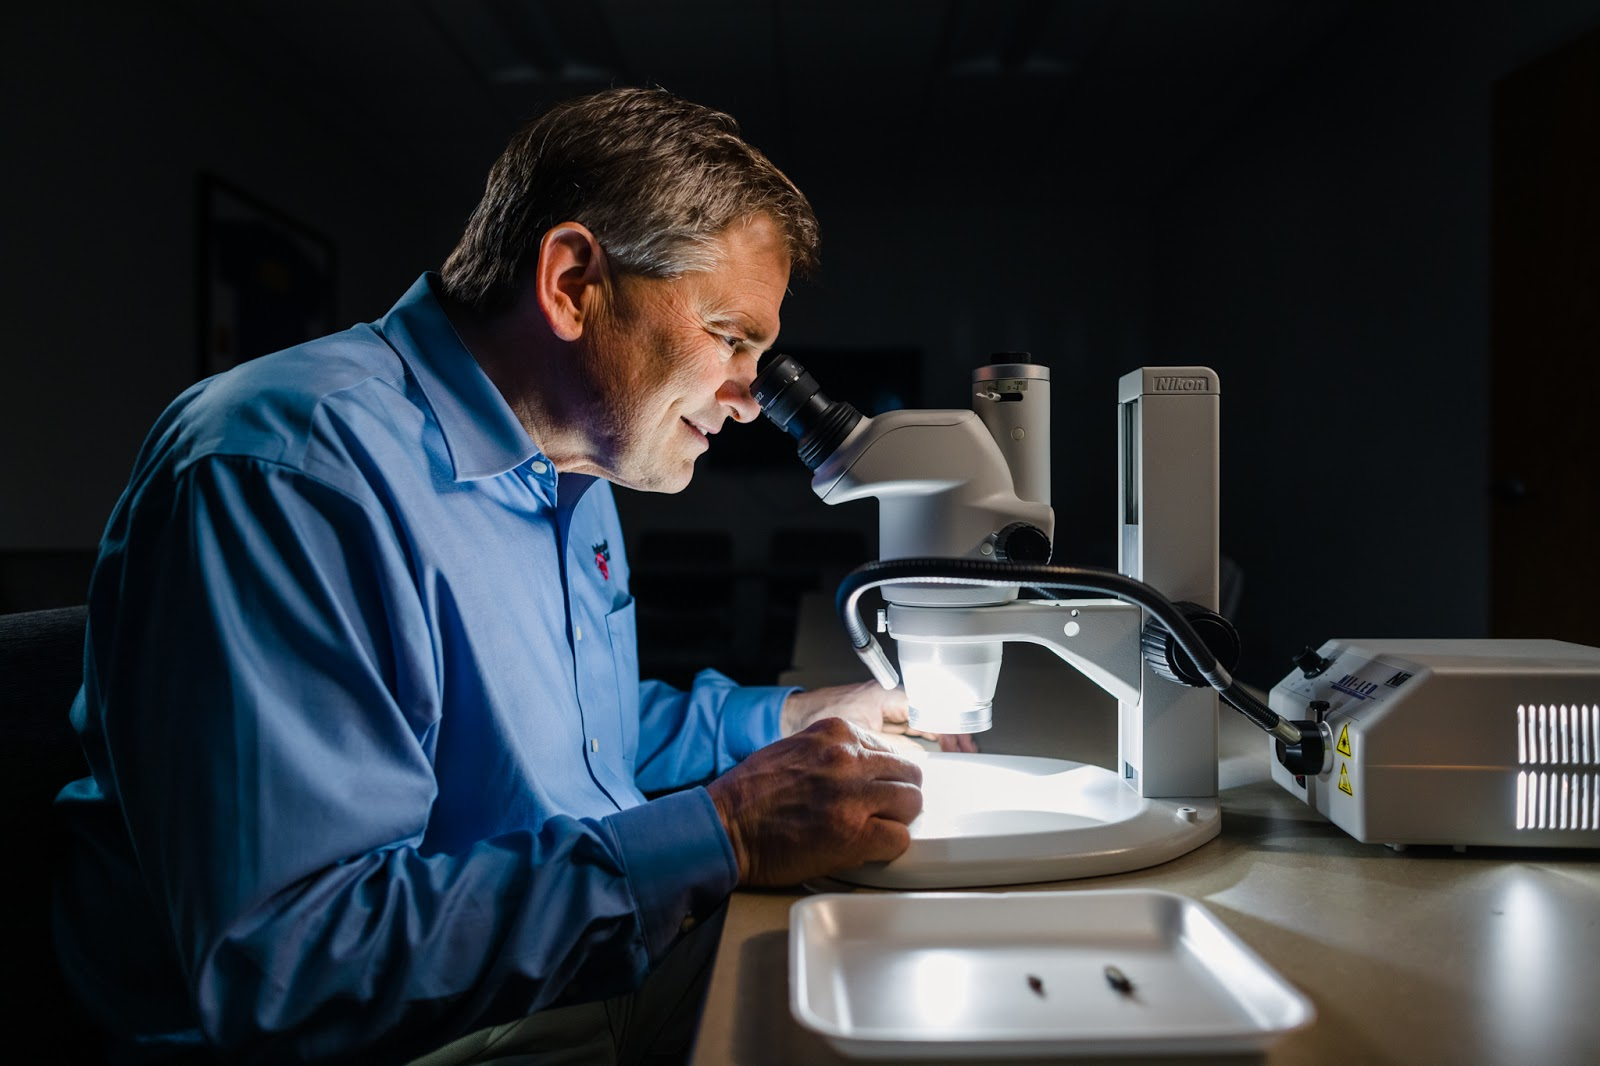 entomologist looking through microscope to study bugs.